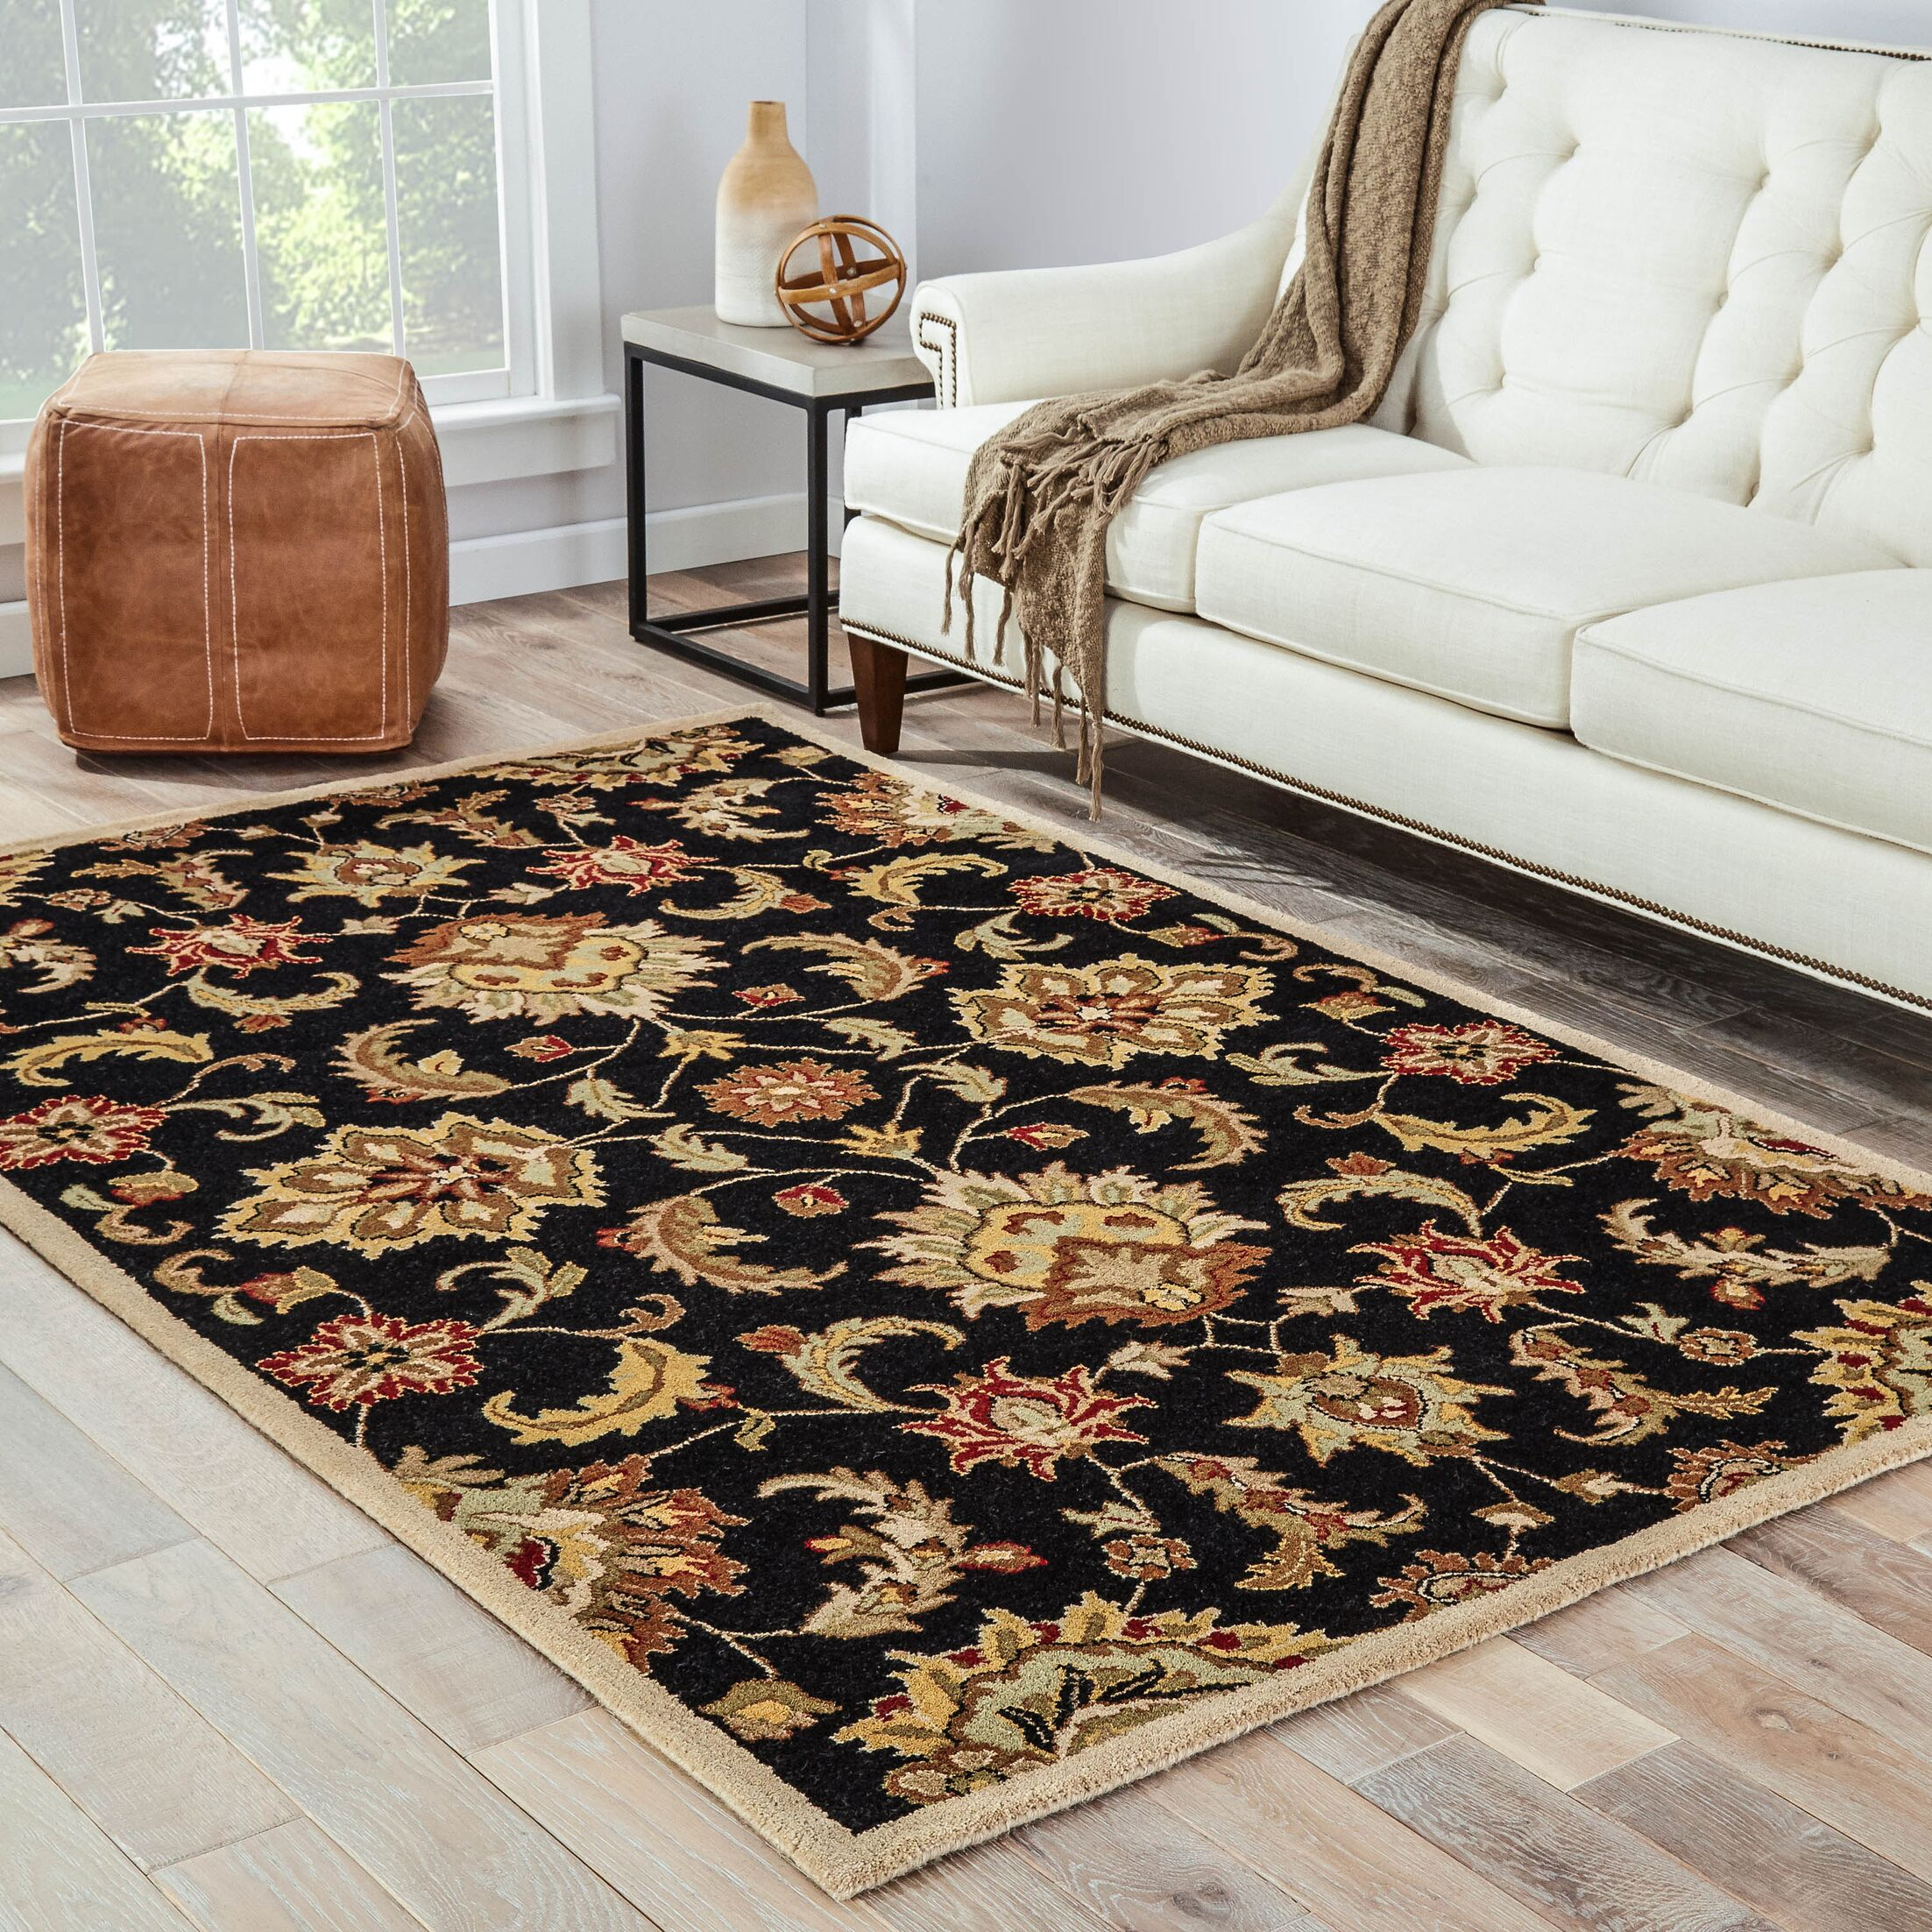 Thornhill Black/Tan Area Rug Rug Size: Rectangle 5' x 8'